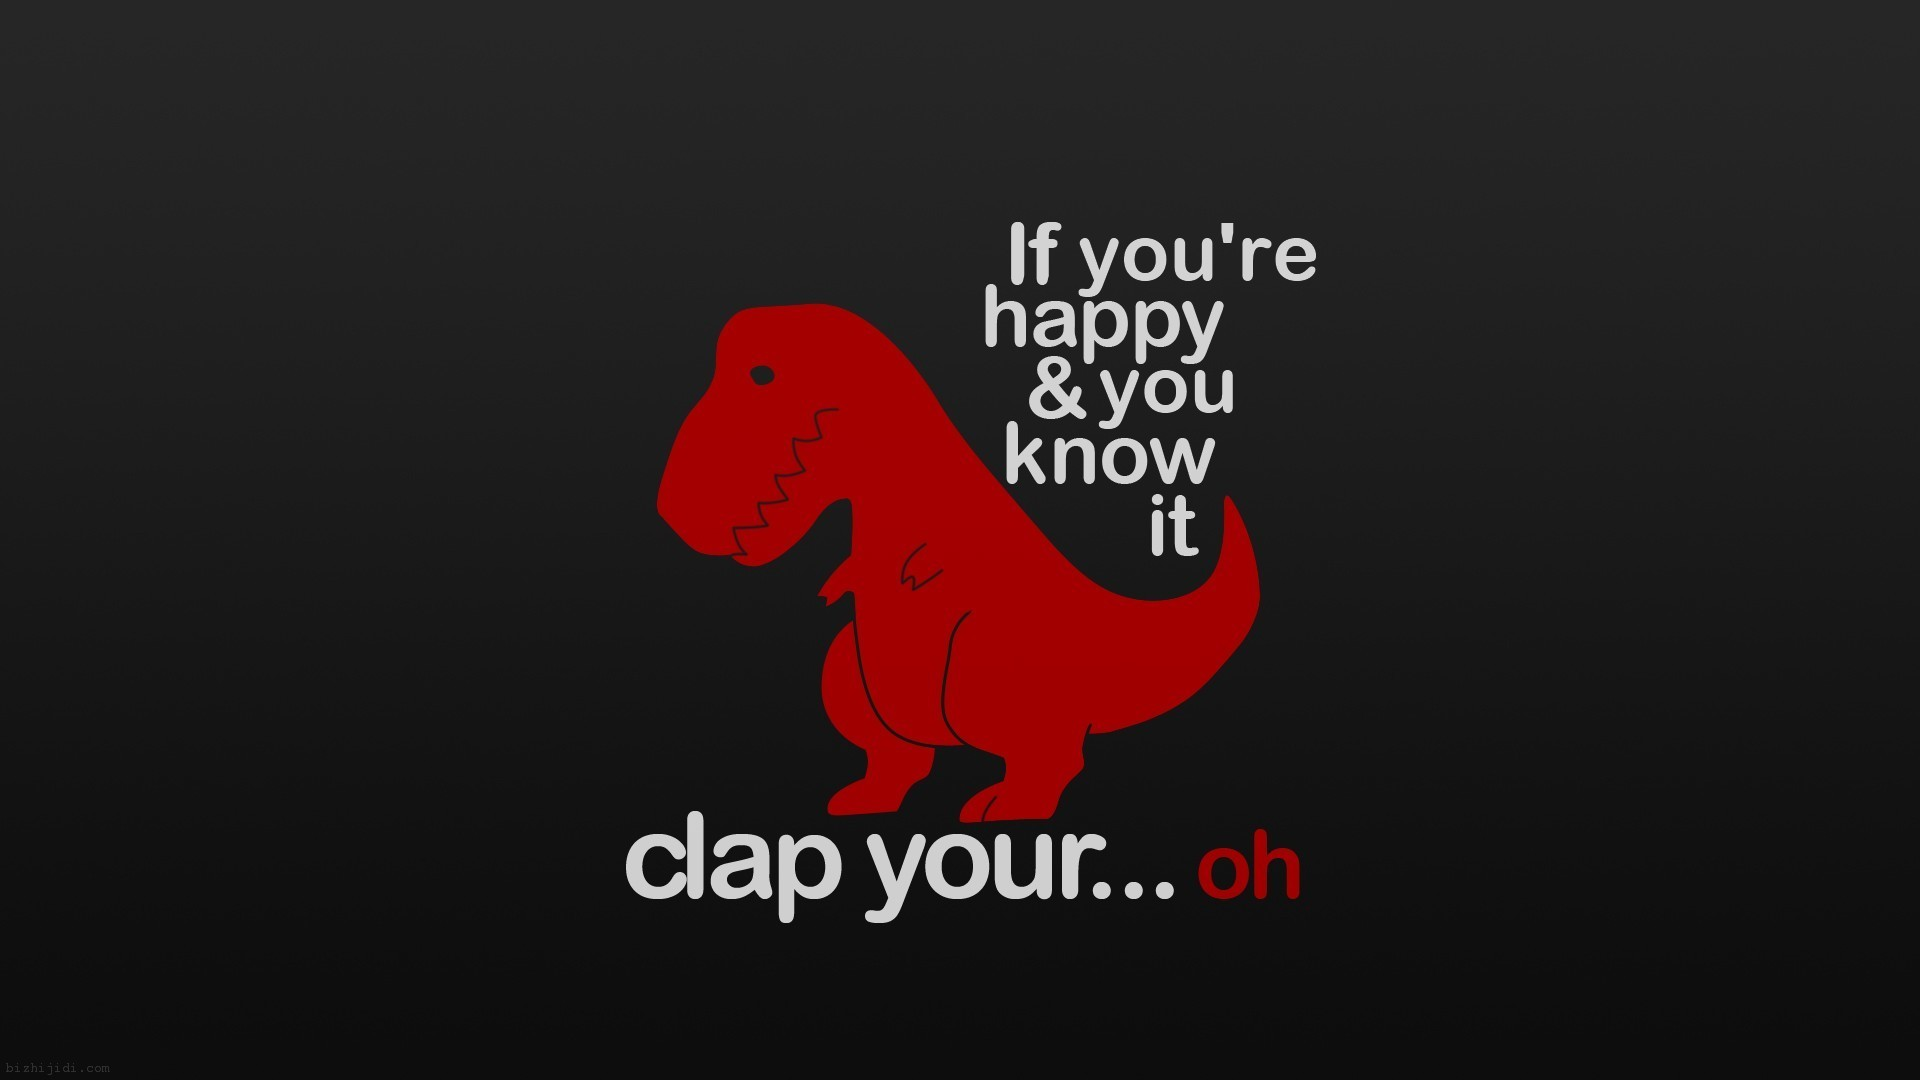 Funny Screen Backgrounds (61+ Images